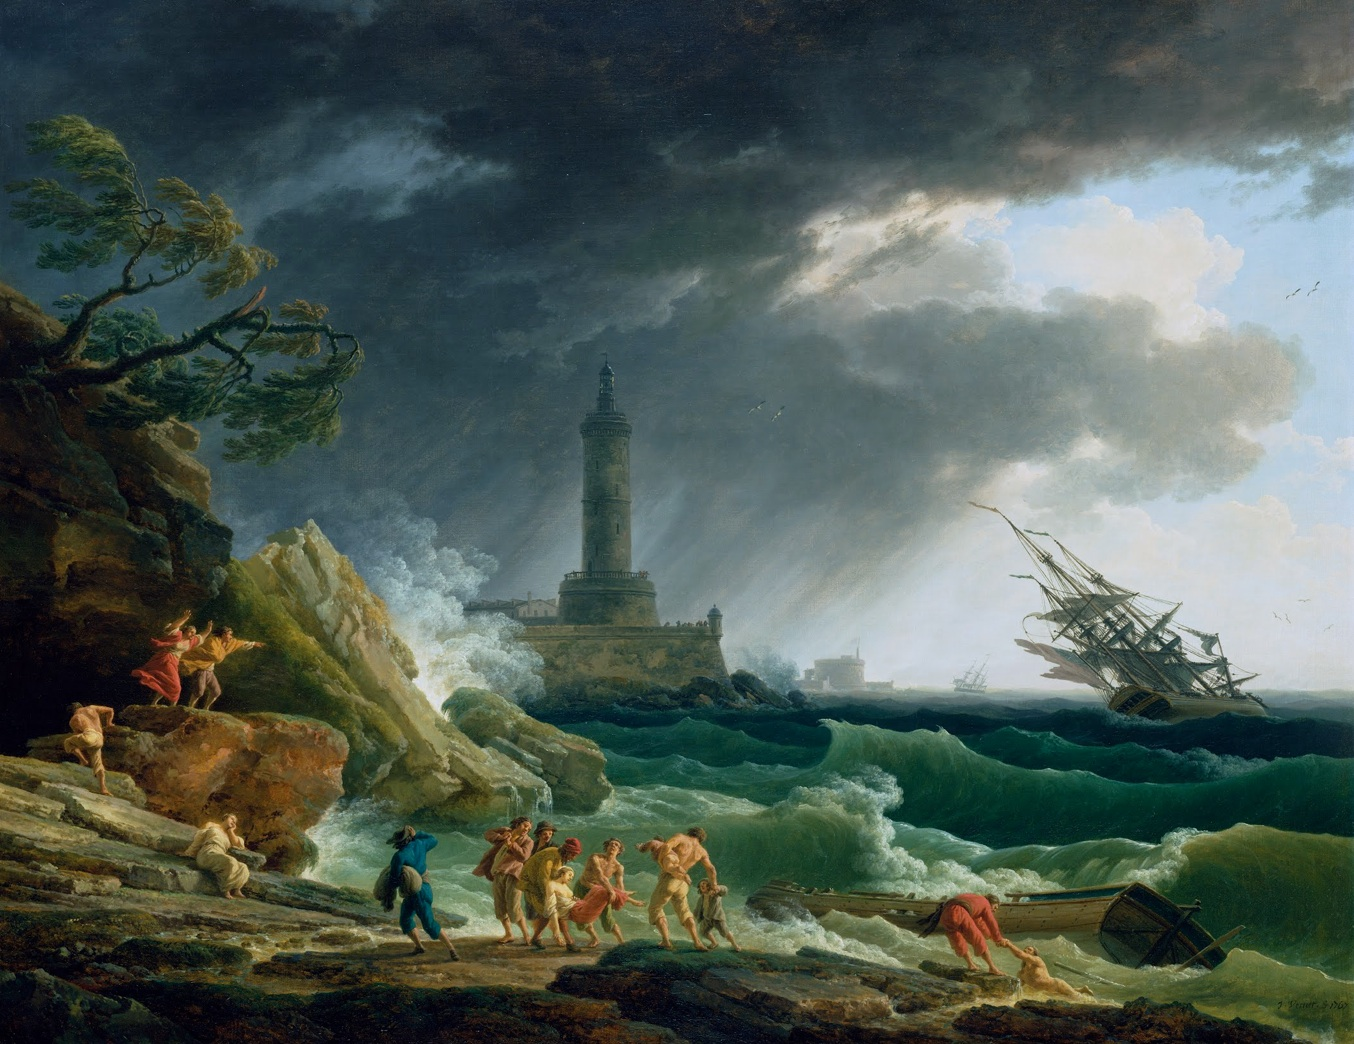 http://www.eurocles.com/arpoma/arpoma.php?action=image&image=../data/peinture/vernet//vernet%20-%20A%20Storm%20On%20A%20Mediterranean%20Coast%201767%20The%20J.%20Paul%20Getty%20Museum%20().jpg